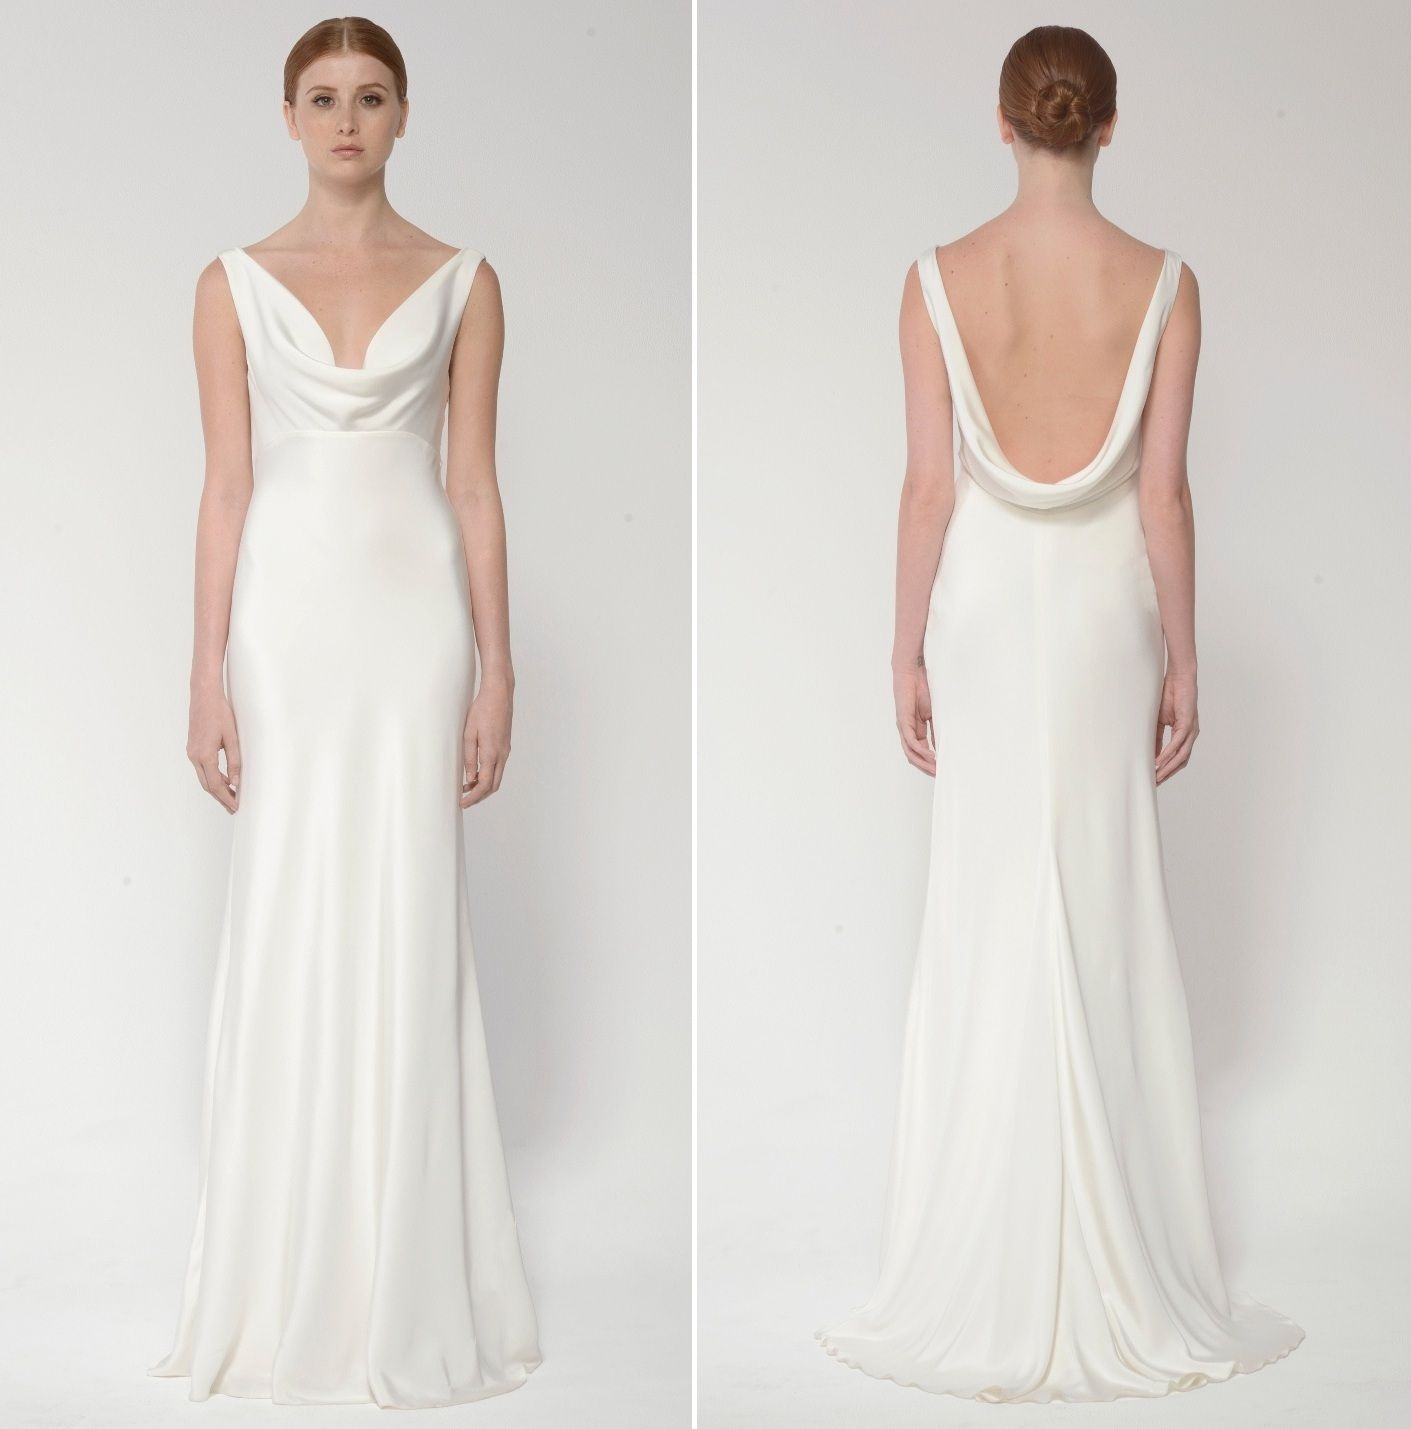 Cowl Neck Sheath Wedding Dress Monique Lhuillier Bliss Bridal Collection Bl 1432 Duo